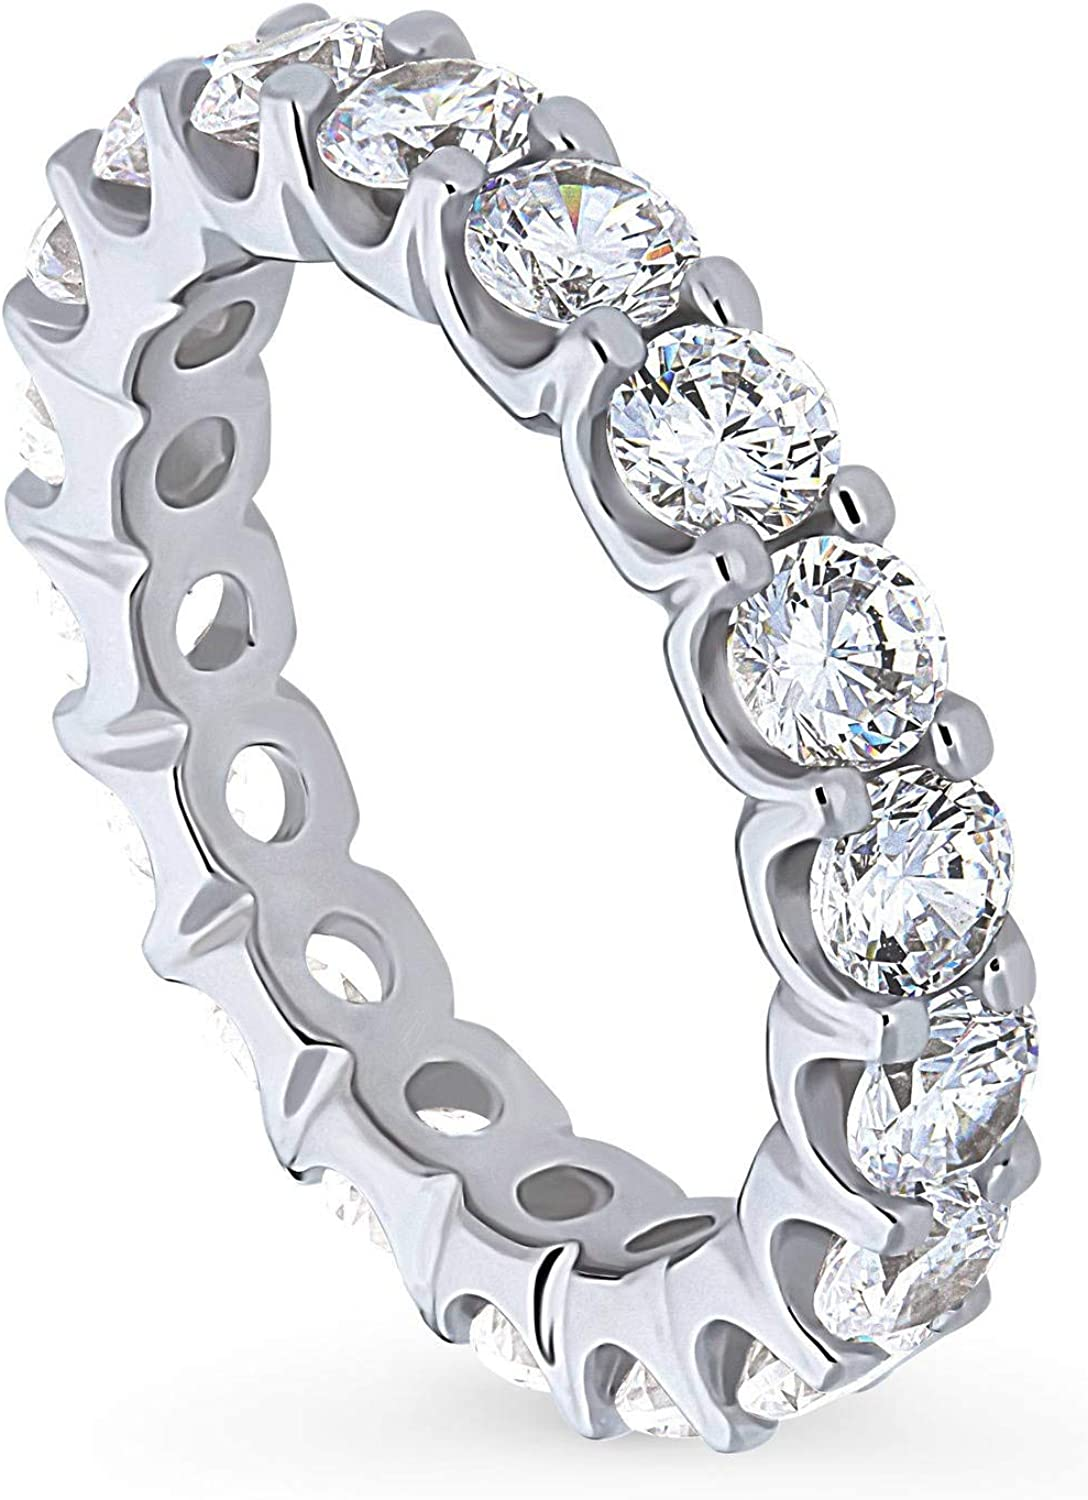 BERRICLE Rhodium Plated Sterling Silver CZ Large-scale sale Popular overseas Annive Cubic Zirconia